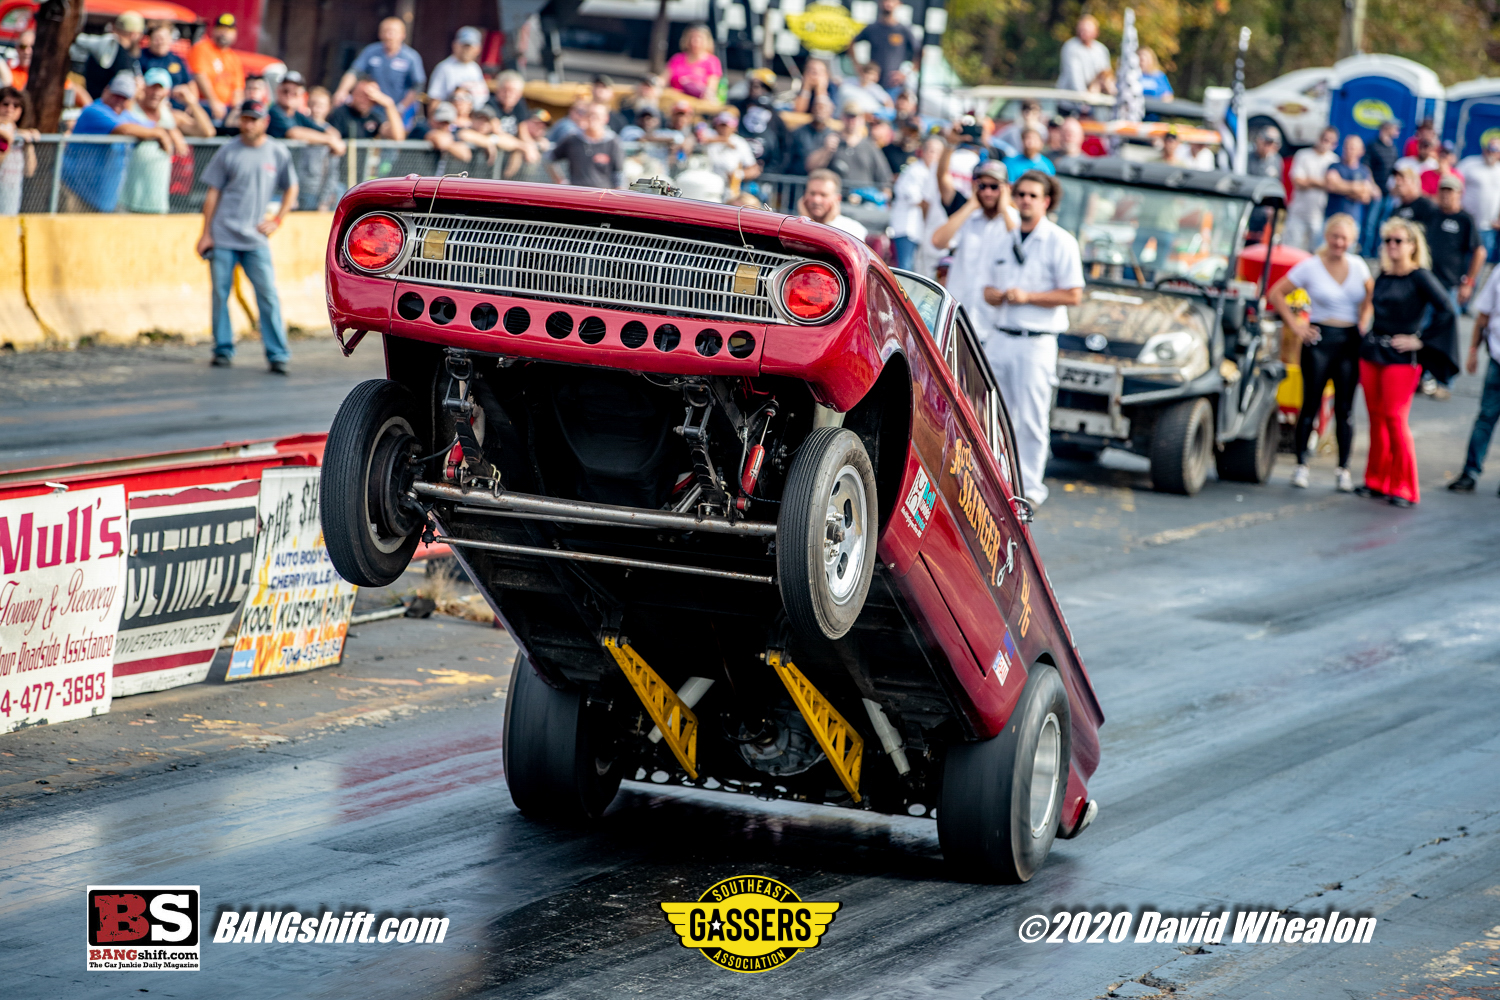 Wheels Up, Revs Up, Fun Up! Action Photos From The Southeast Gassers Association At Shadyside Dragway